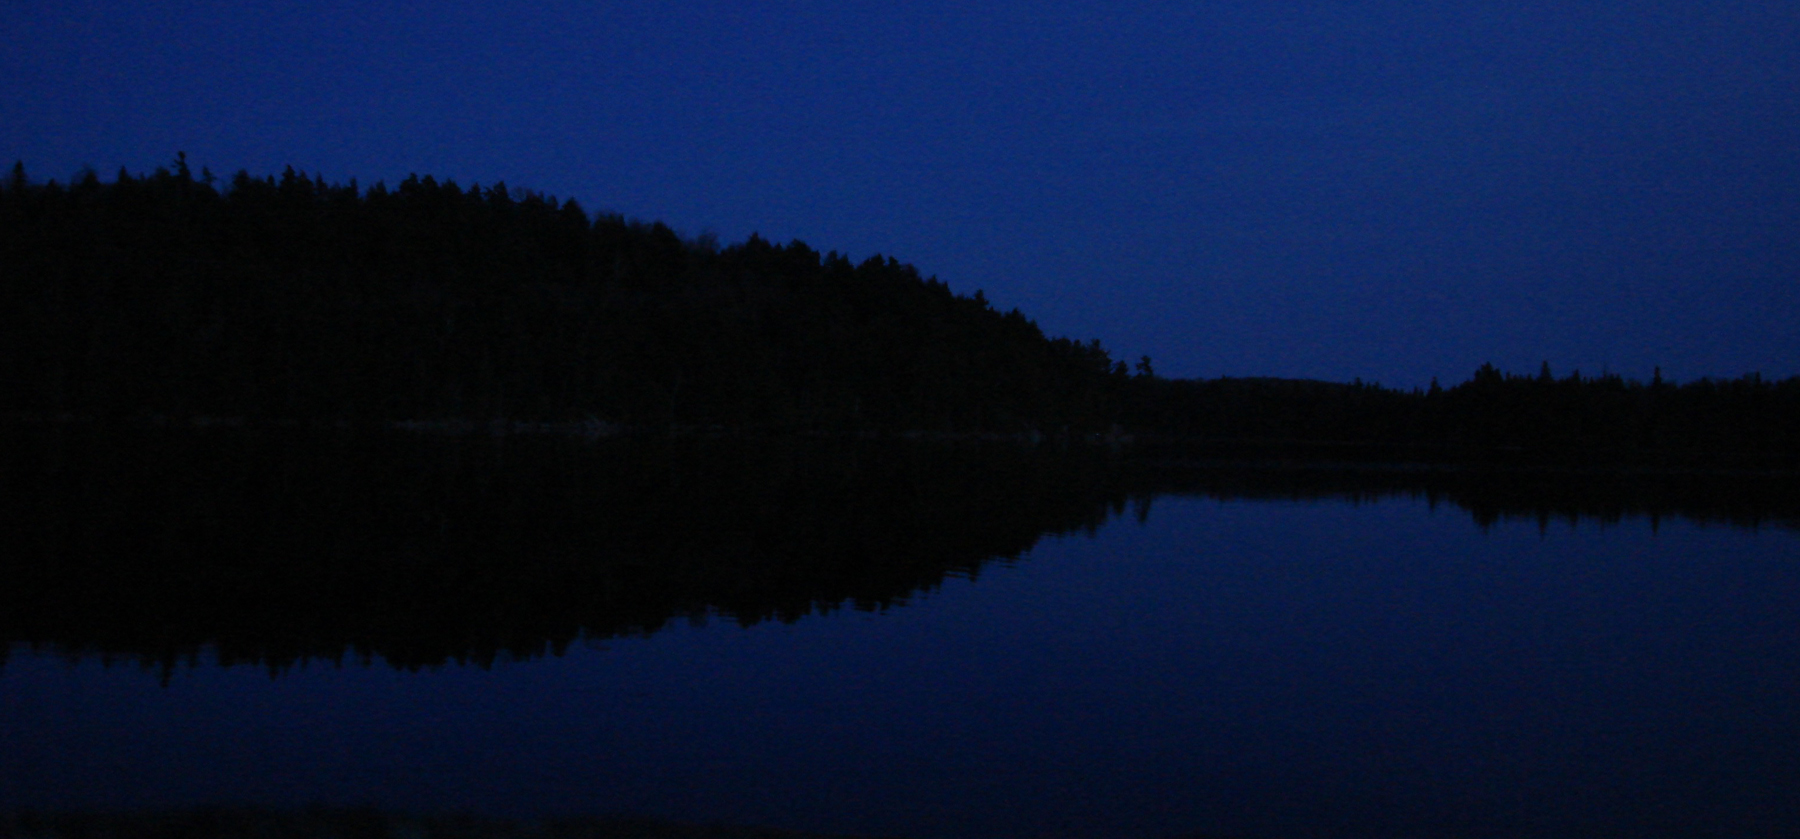 Image for the location page - dusk